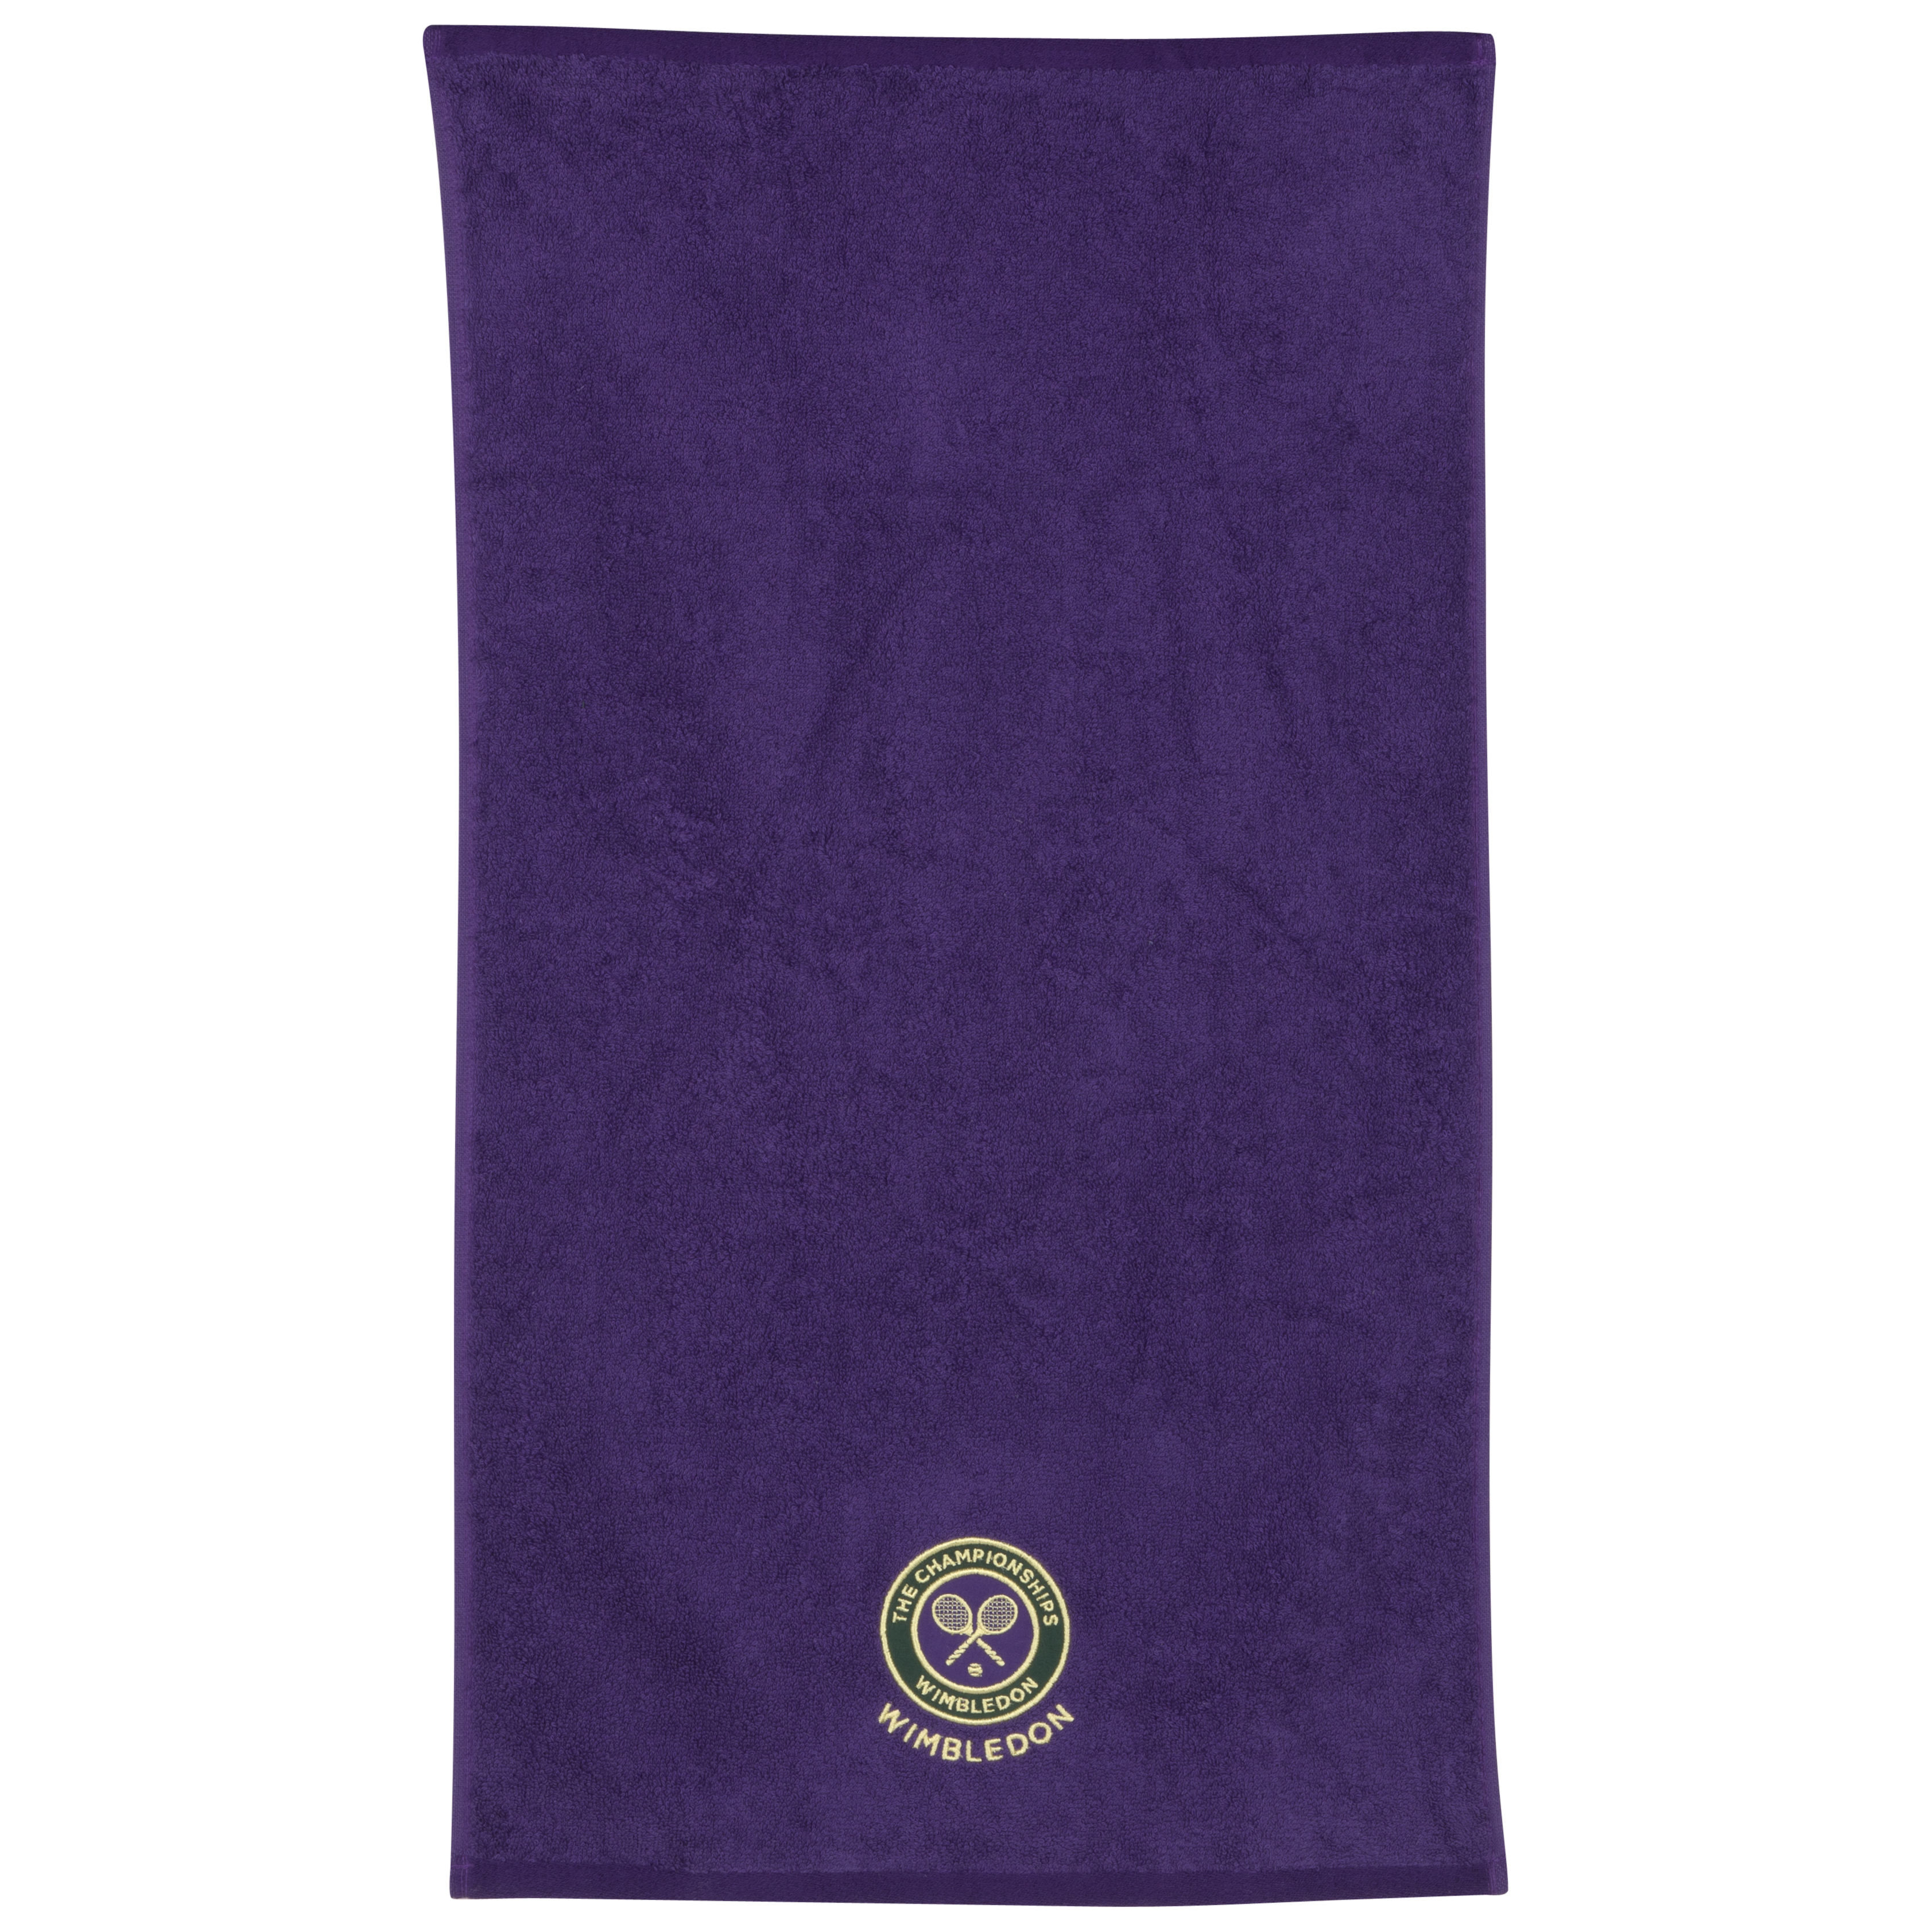 Wimbledon Mens Guest Towel - Purple